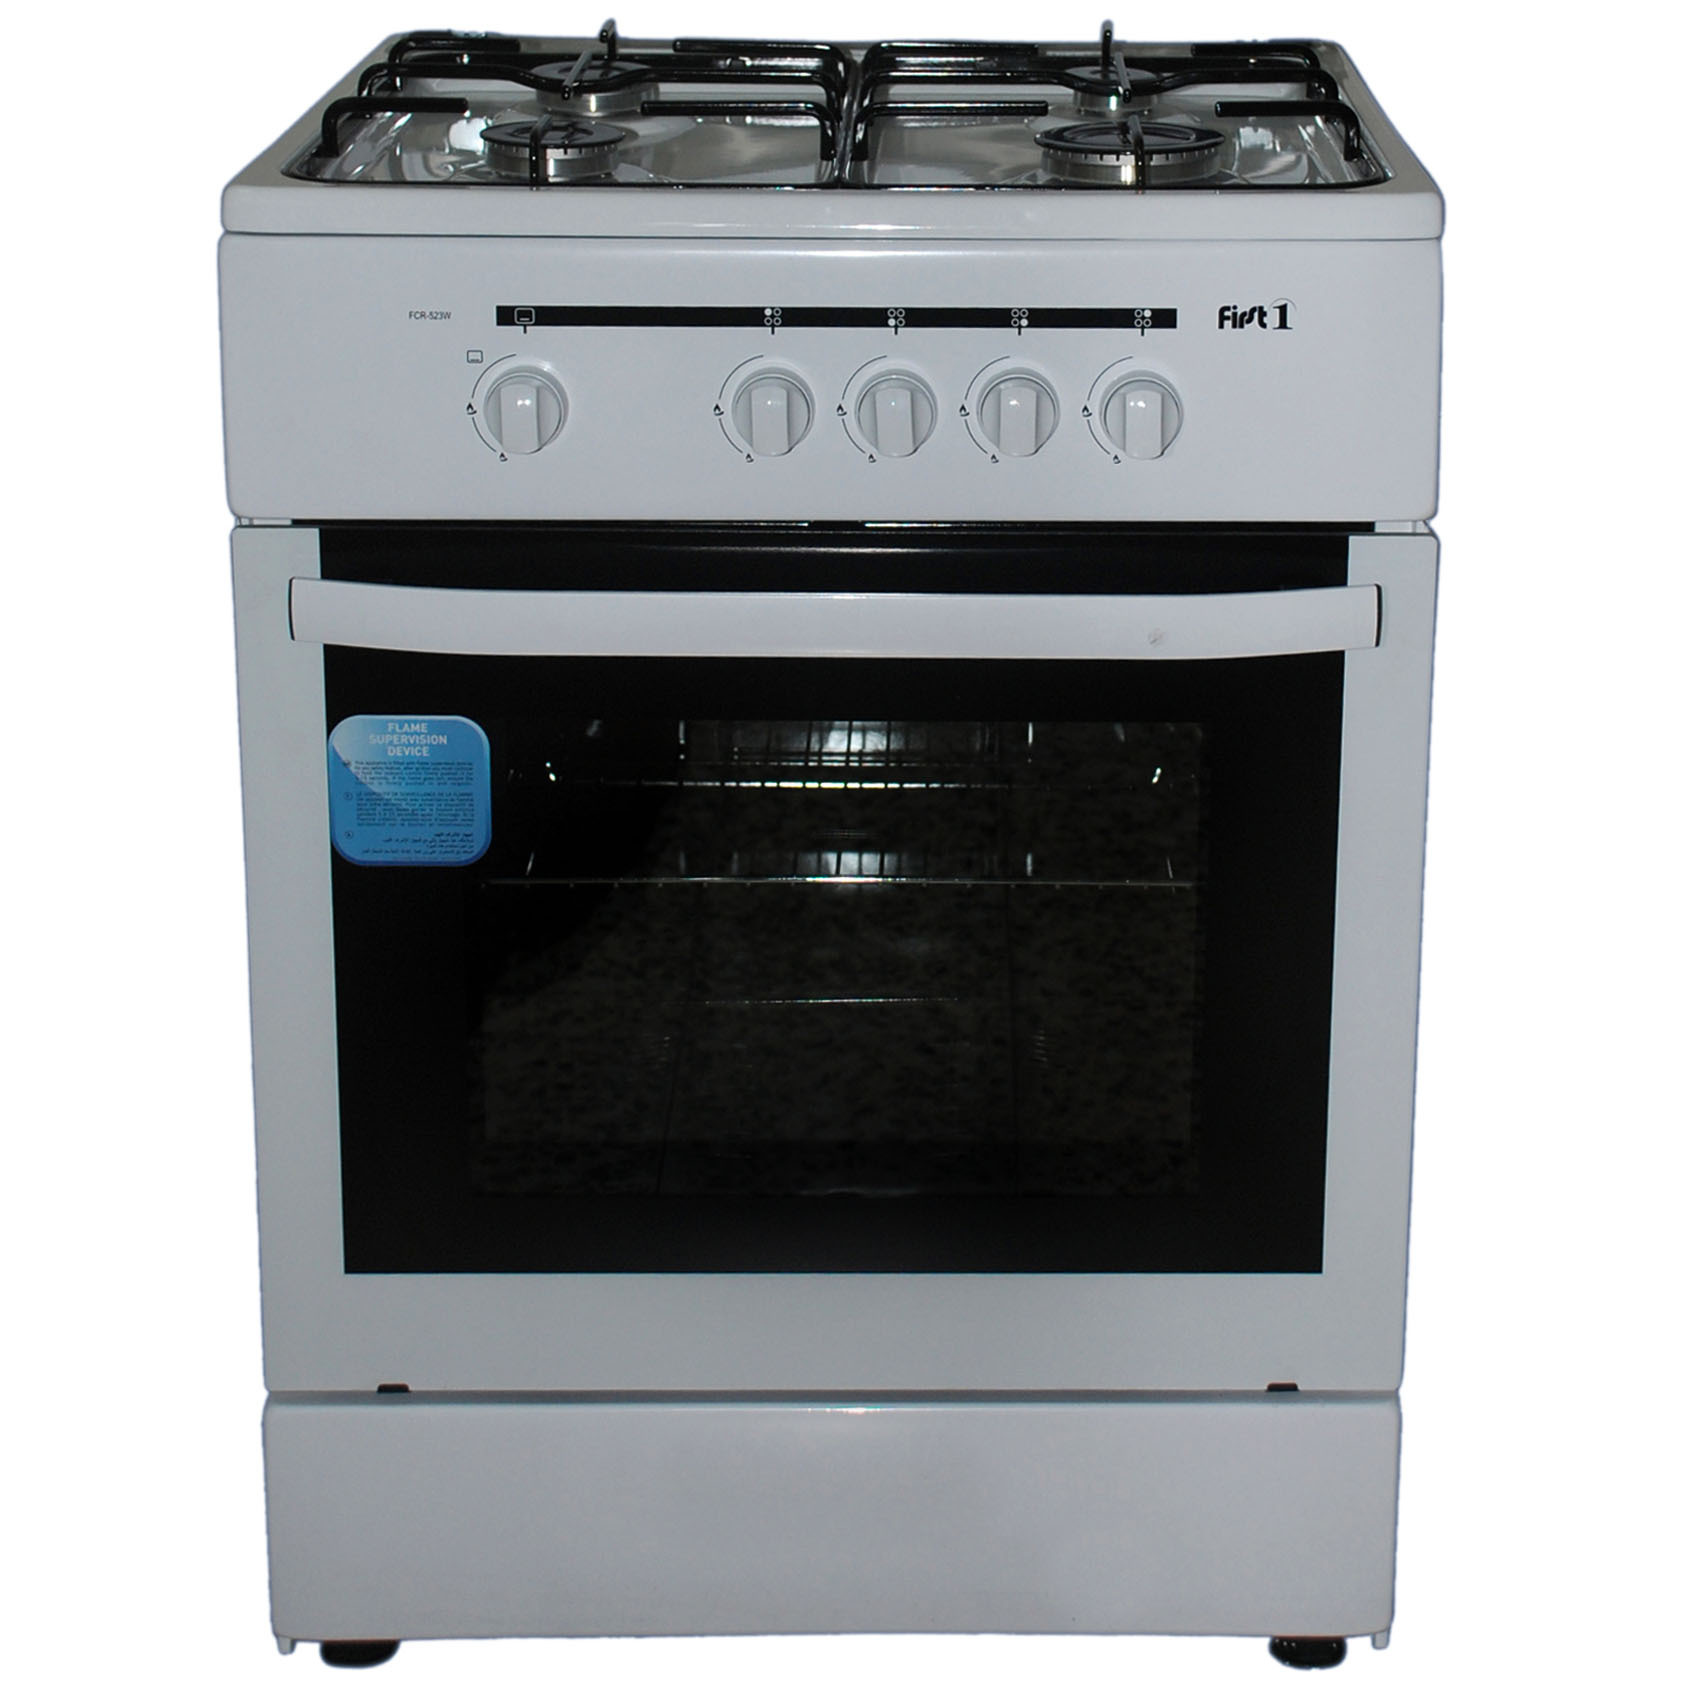 FIRST1 COOKER FCR523-W 60X60CM